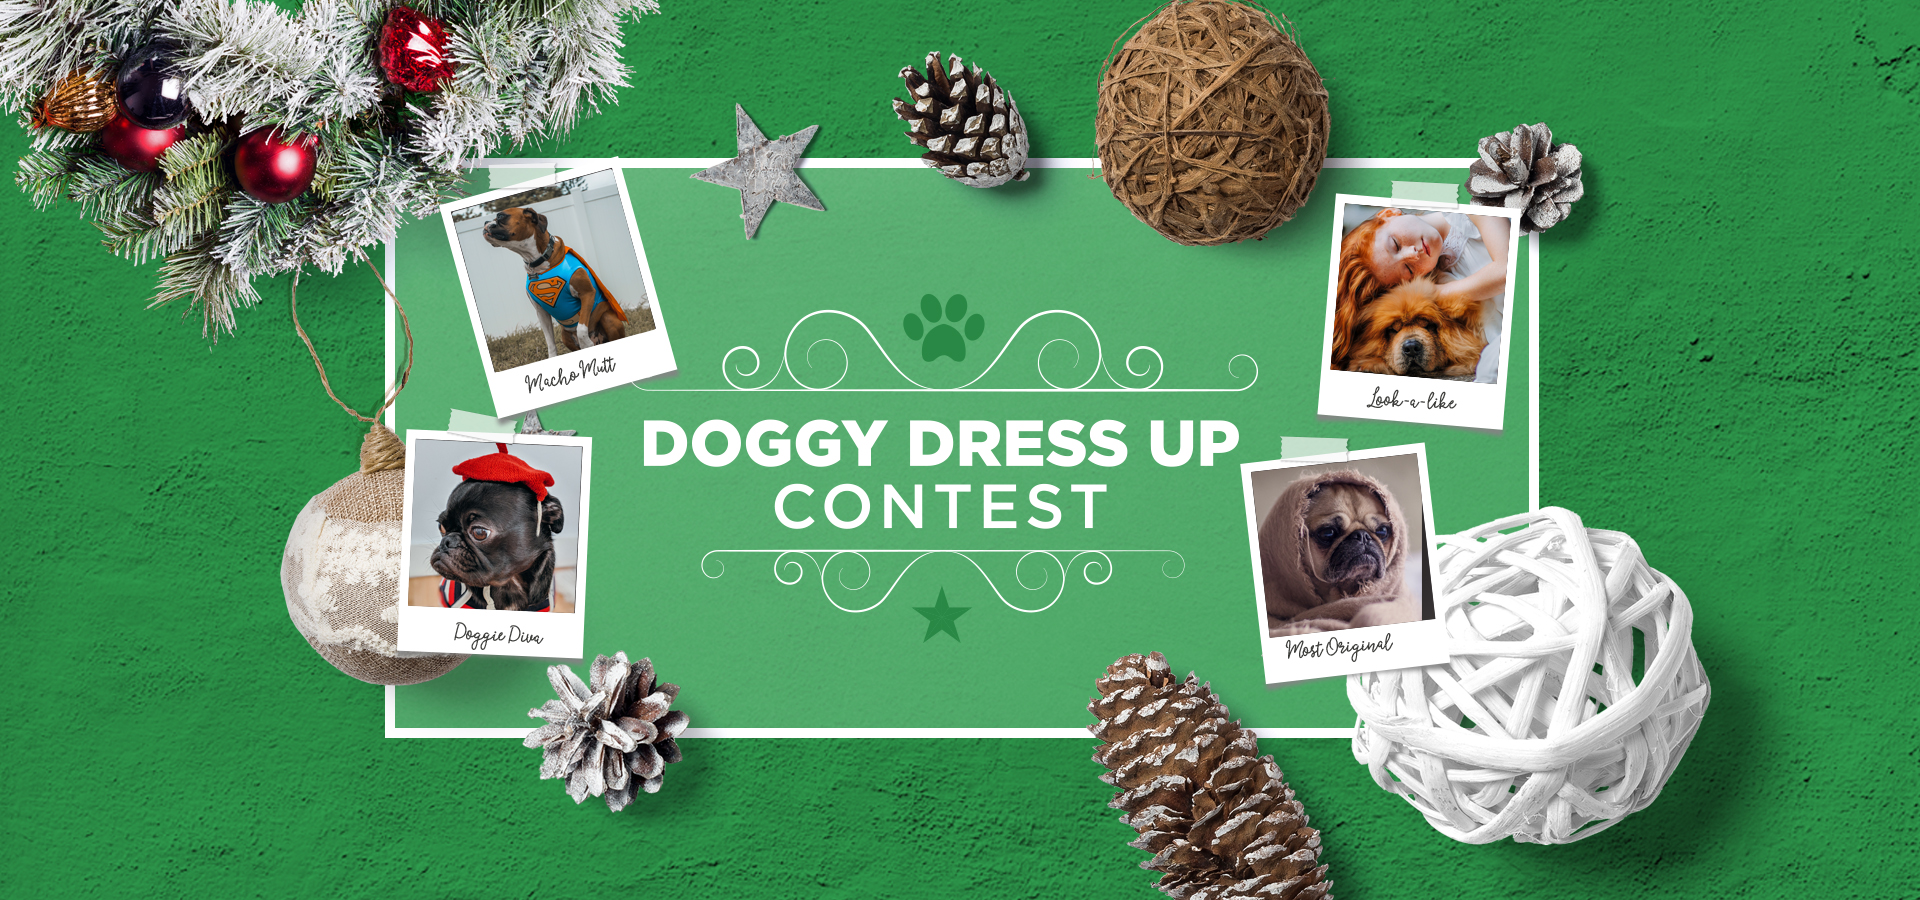 Maling-Road-Doggie-Contest-Banner-2019